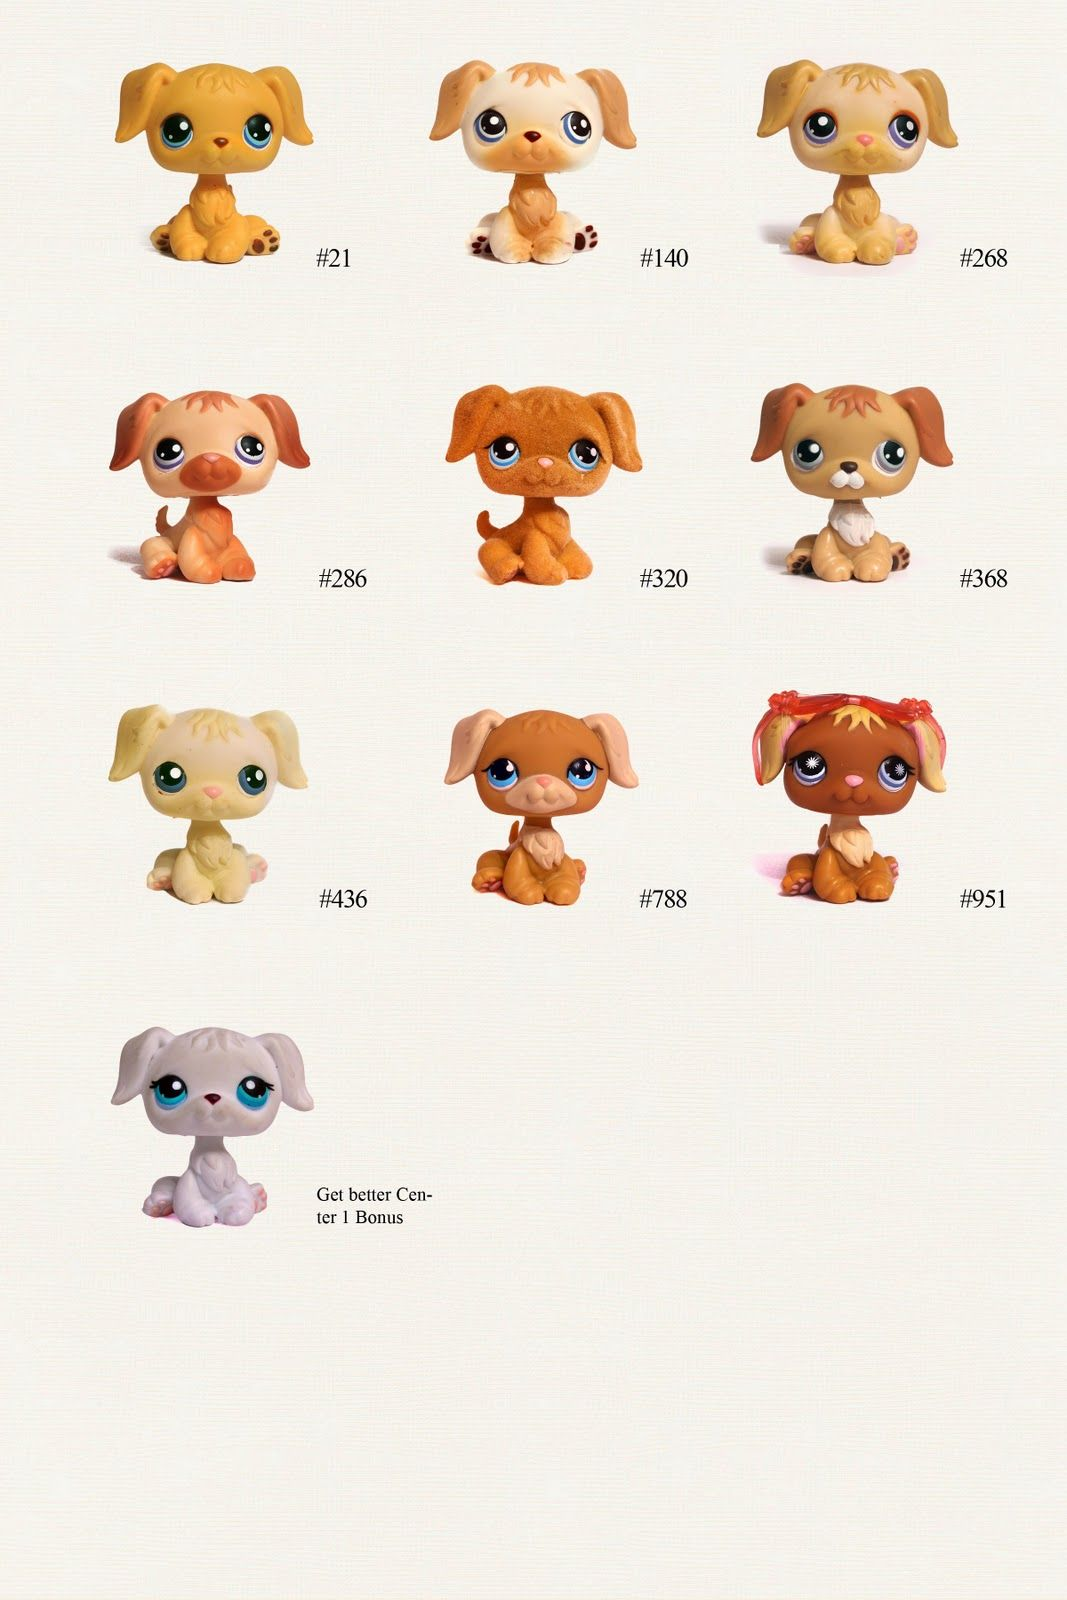 Nicole S Lps Blog Littlest Pet Shop Pets Golden Retriever